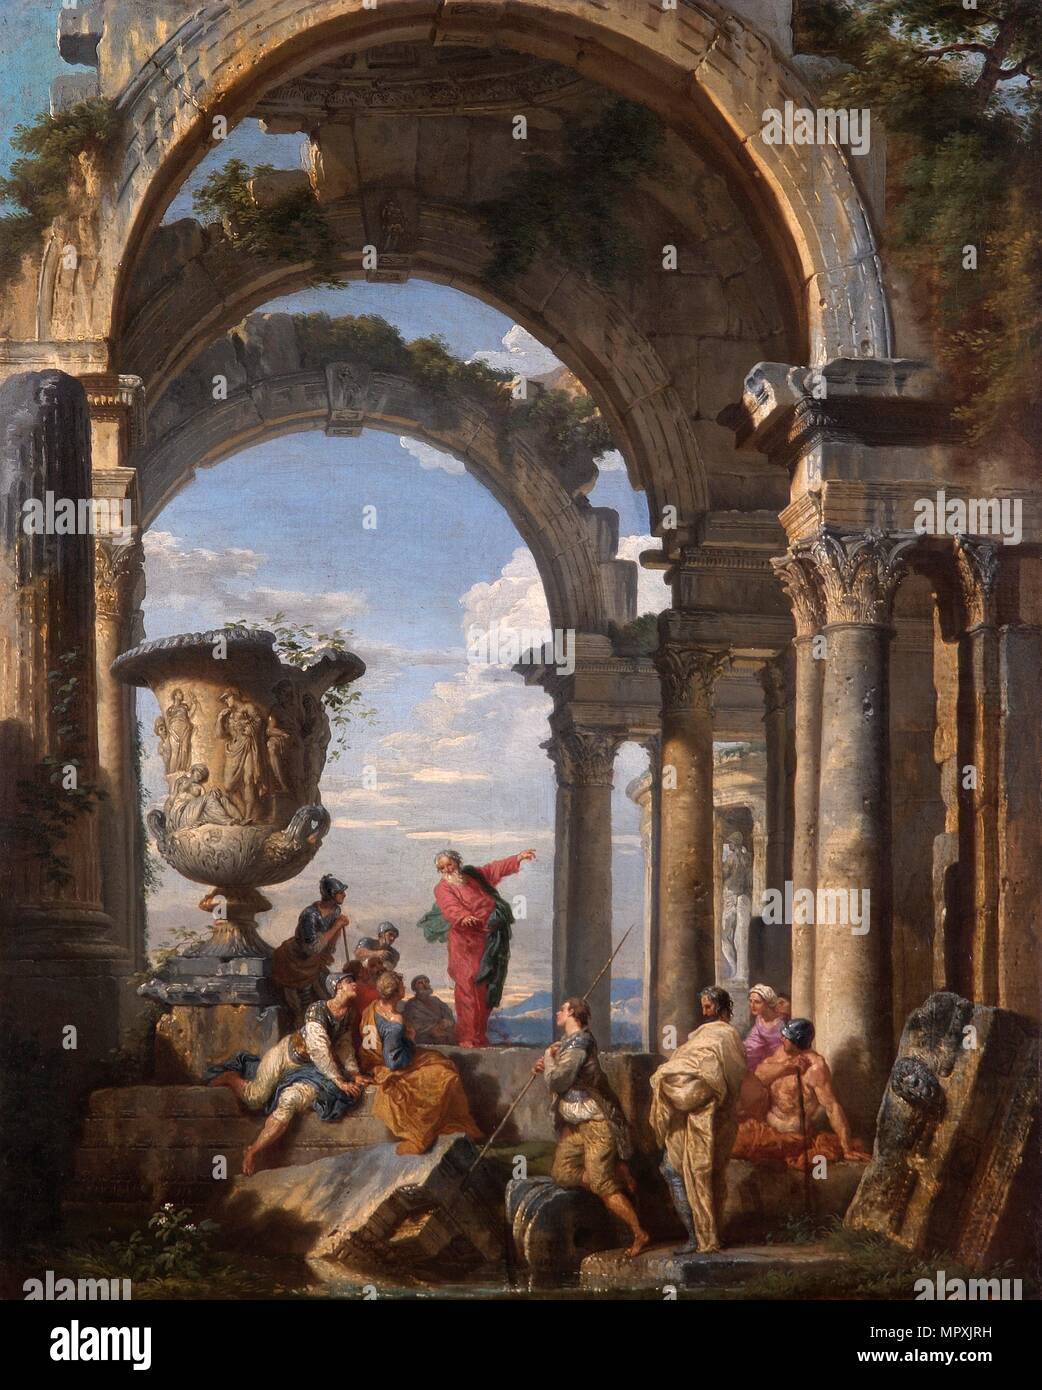 'St Paul Preaching at Athens', 1737. Artist: Giovanni Paolo Panini. - Stock Image